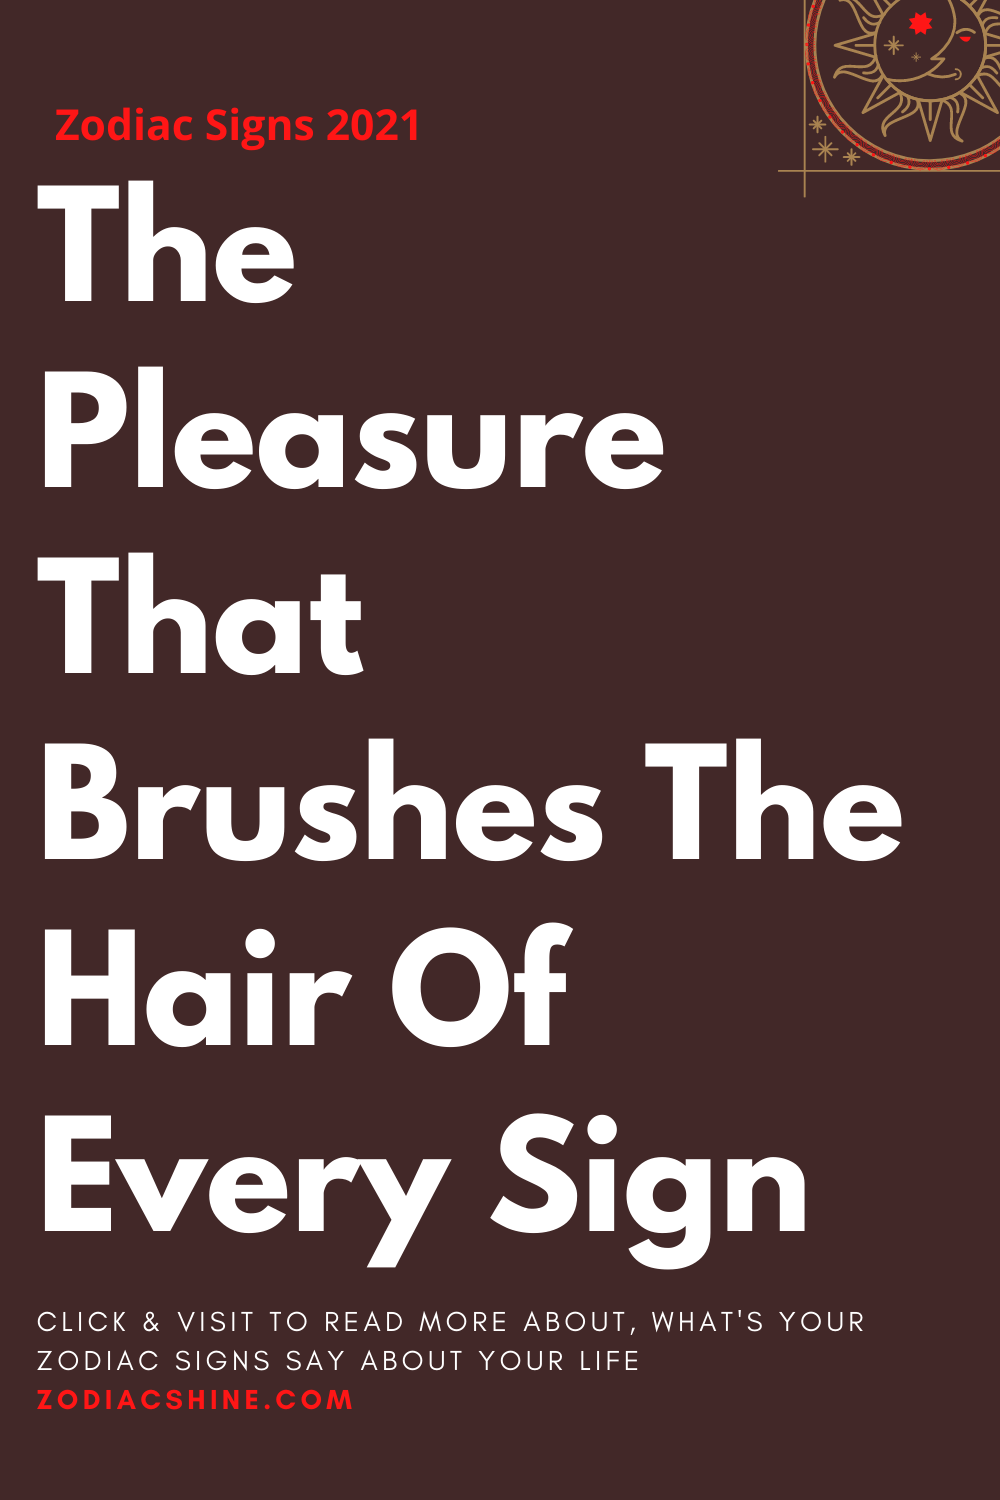 The Pleasure That Brushes The Hair Of Every Sign